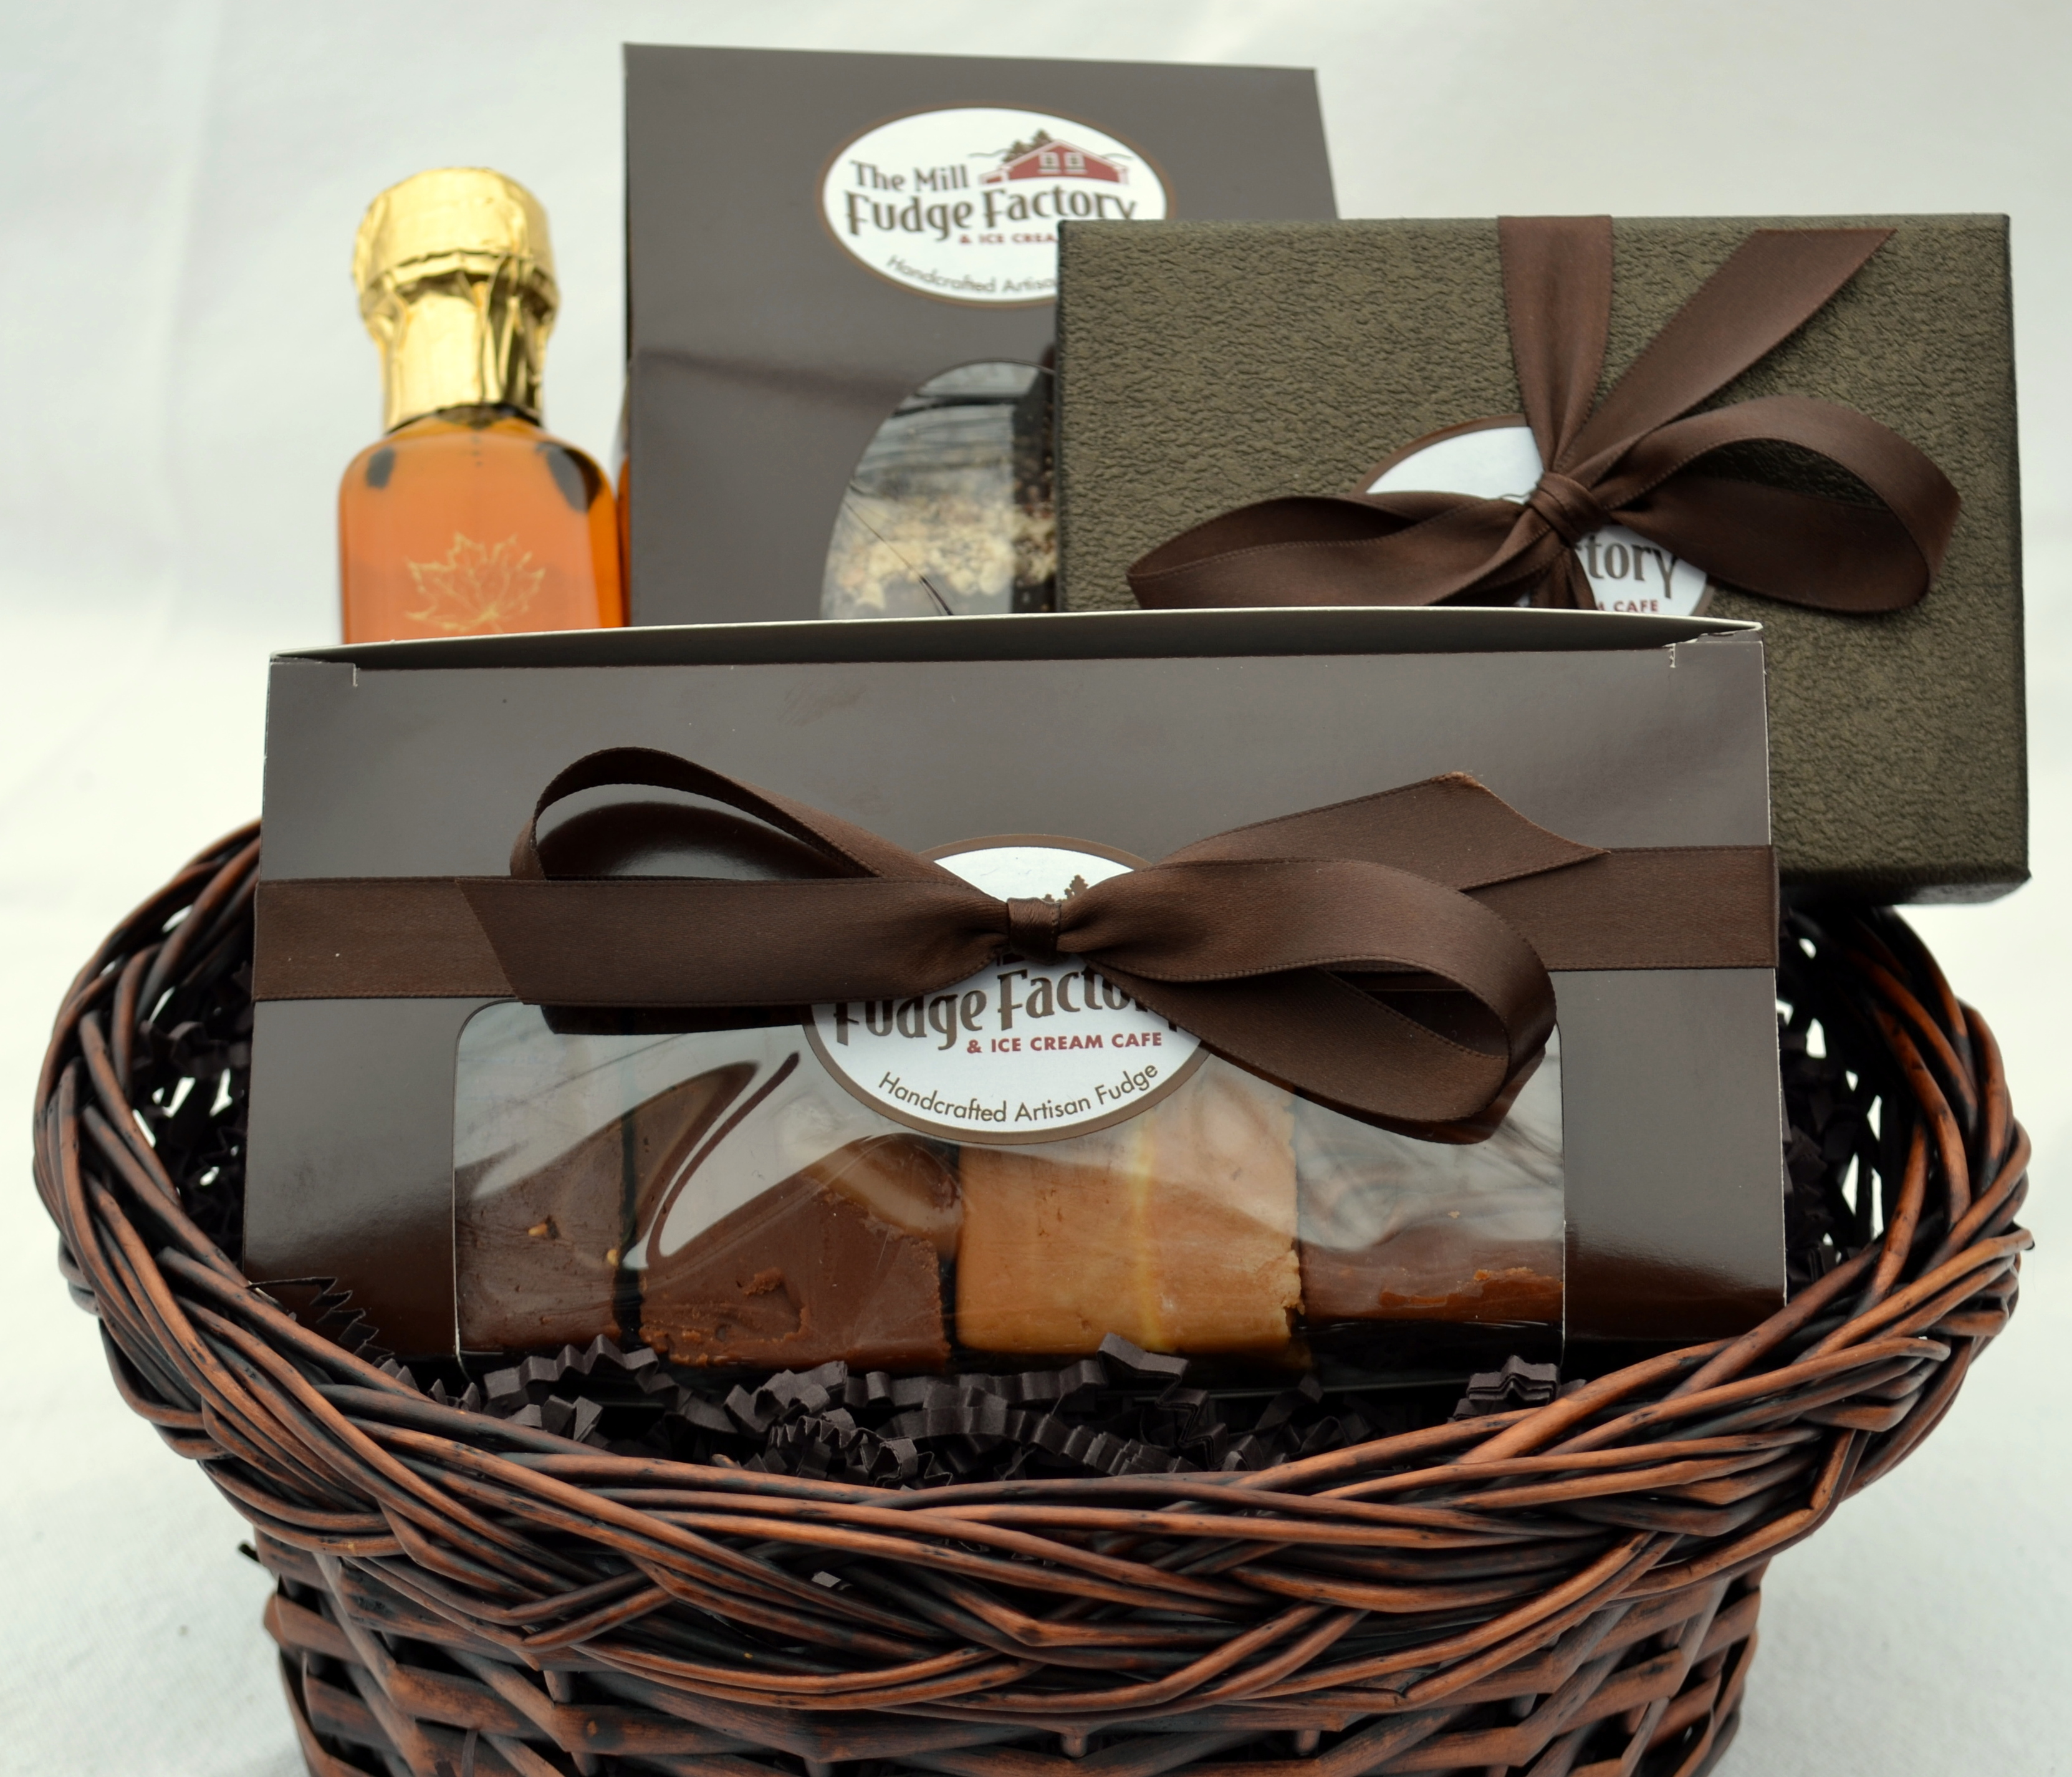 Chocolate Gift Basket - Fudge, Toffee, and Syrup